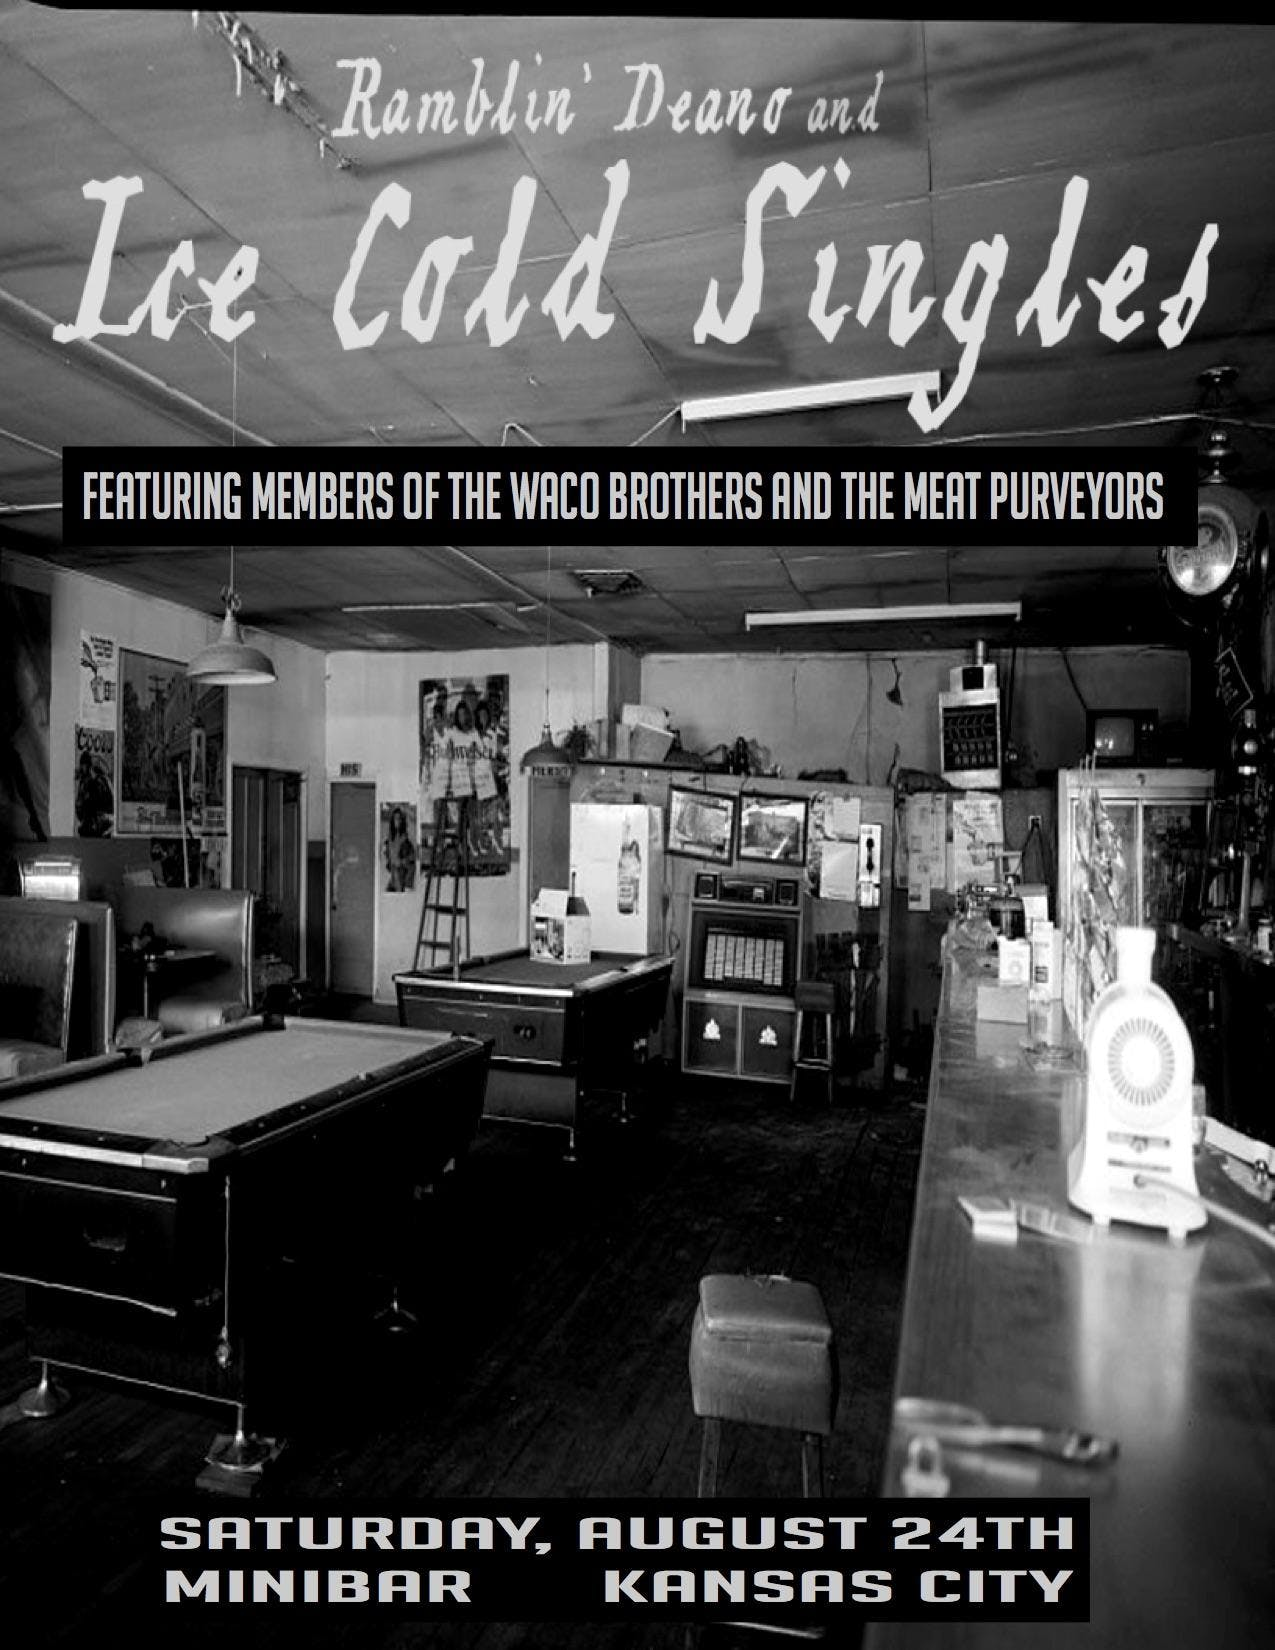 Ramblin' Deano and Ice Cold Singles feat. members of Waco Bros and The Meat Purveyors